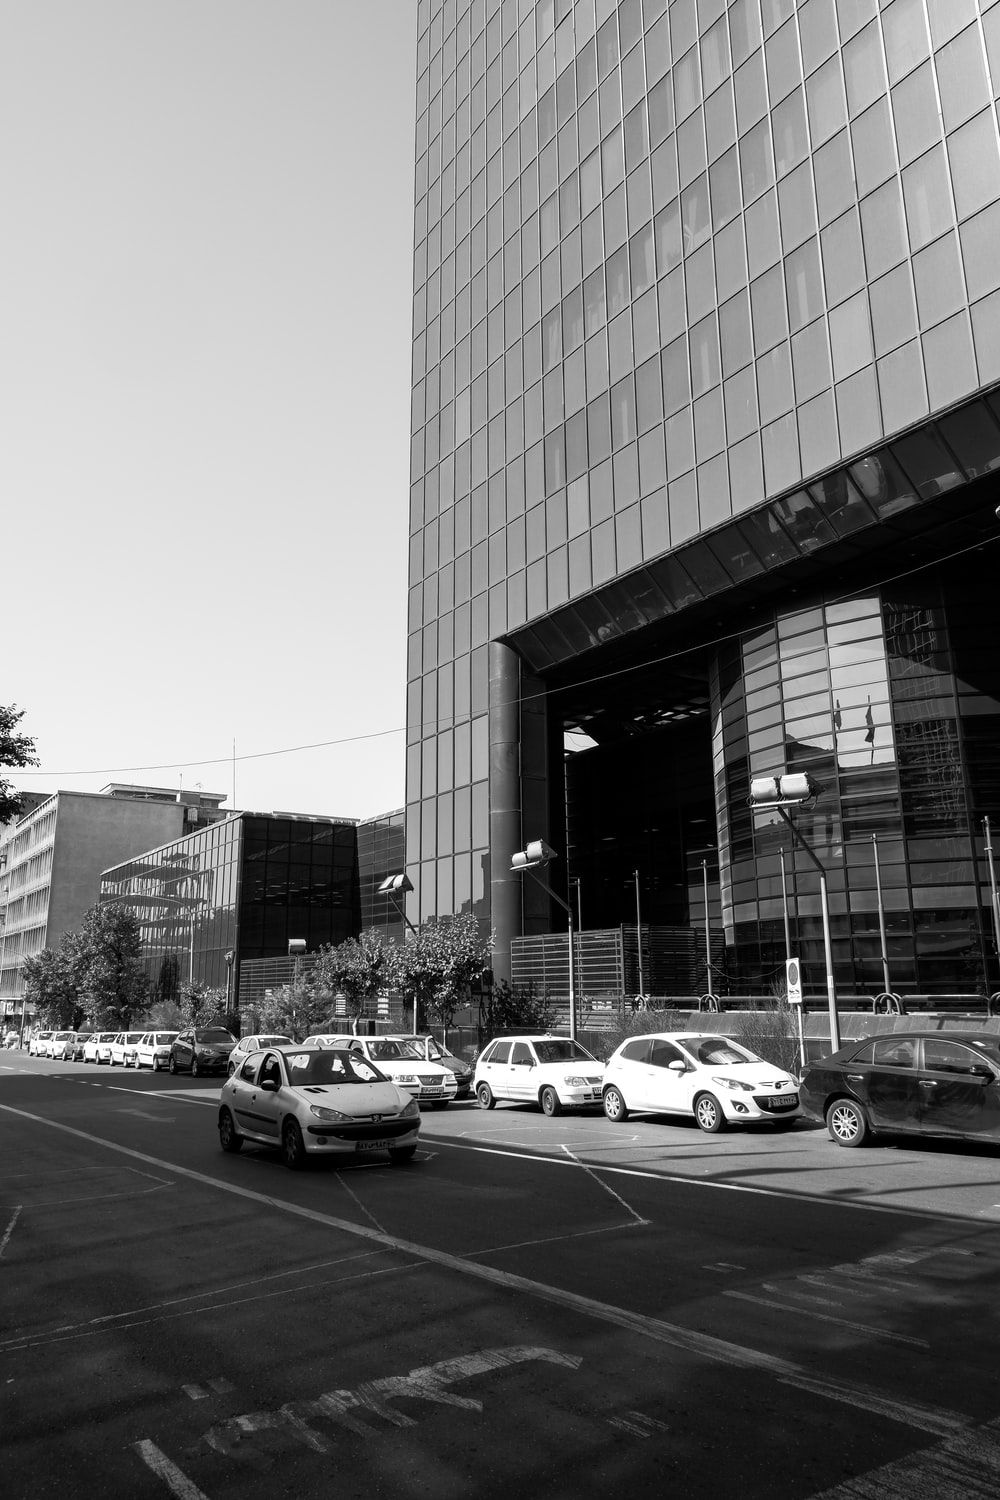 grayscale photo of cars parked near building